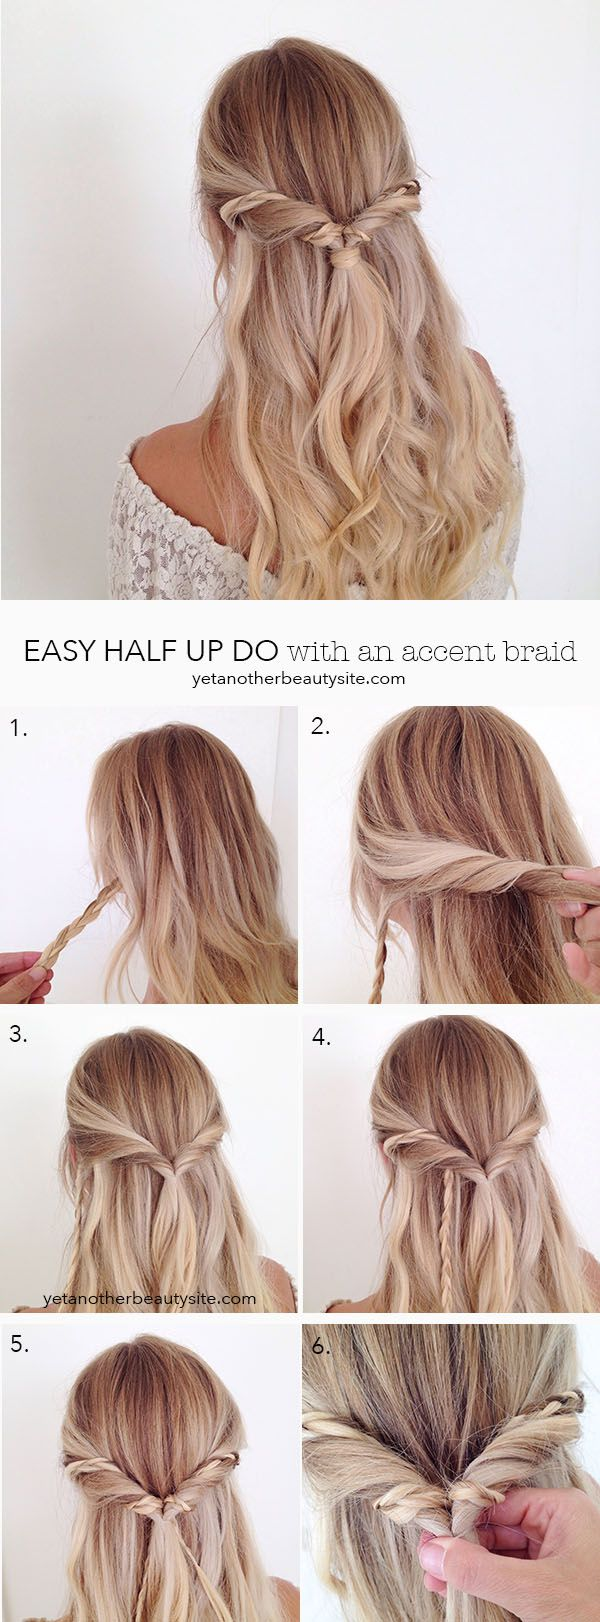 best 25+ easy hairstyles ideas on pinterest | simple hairstyles